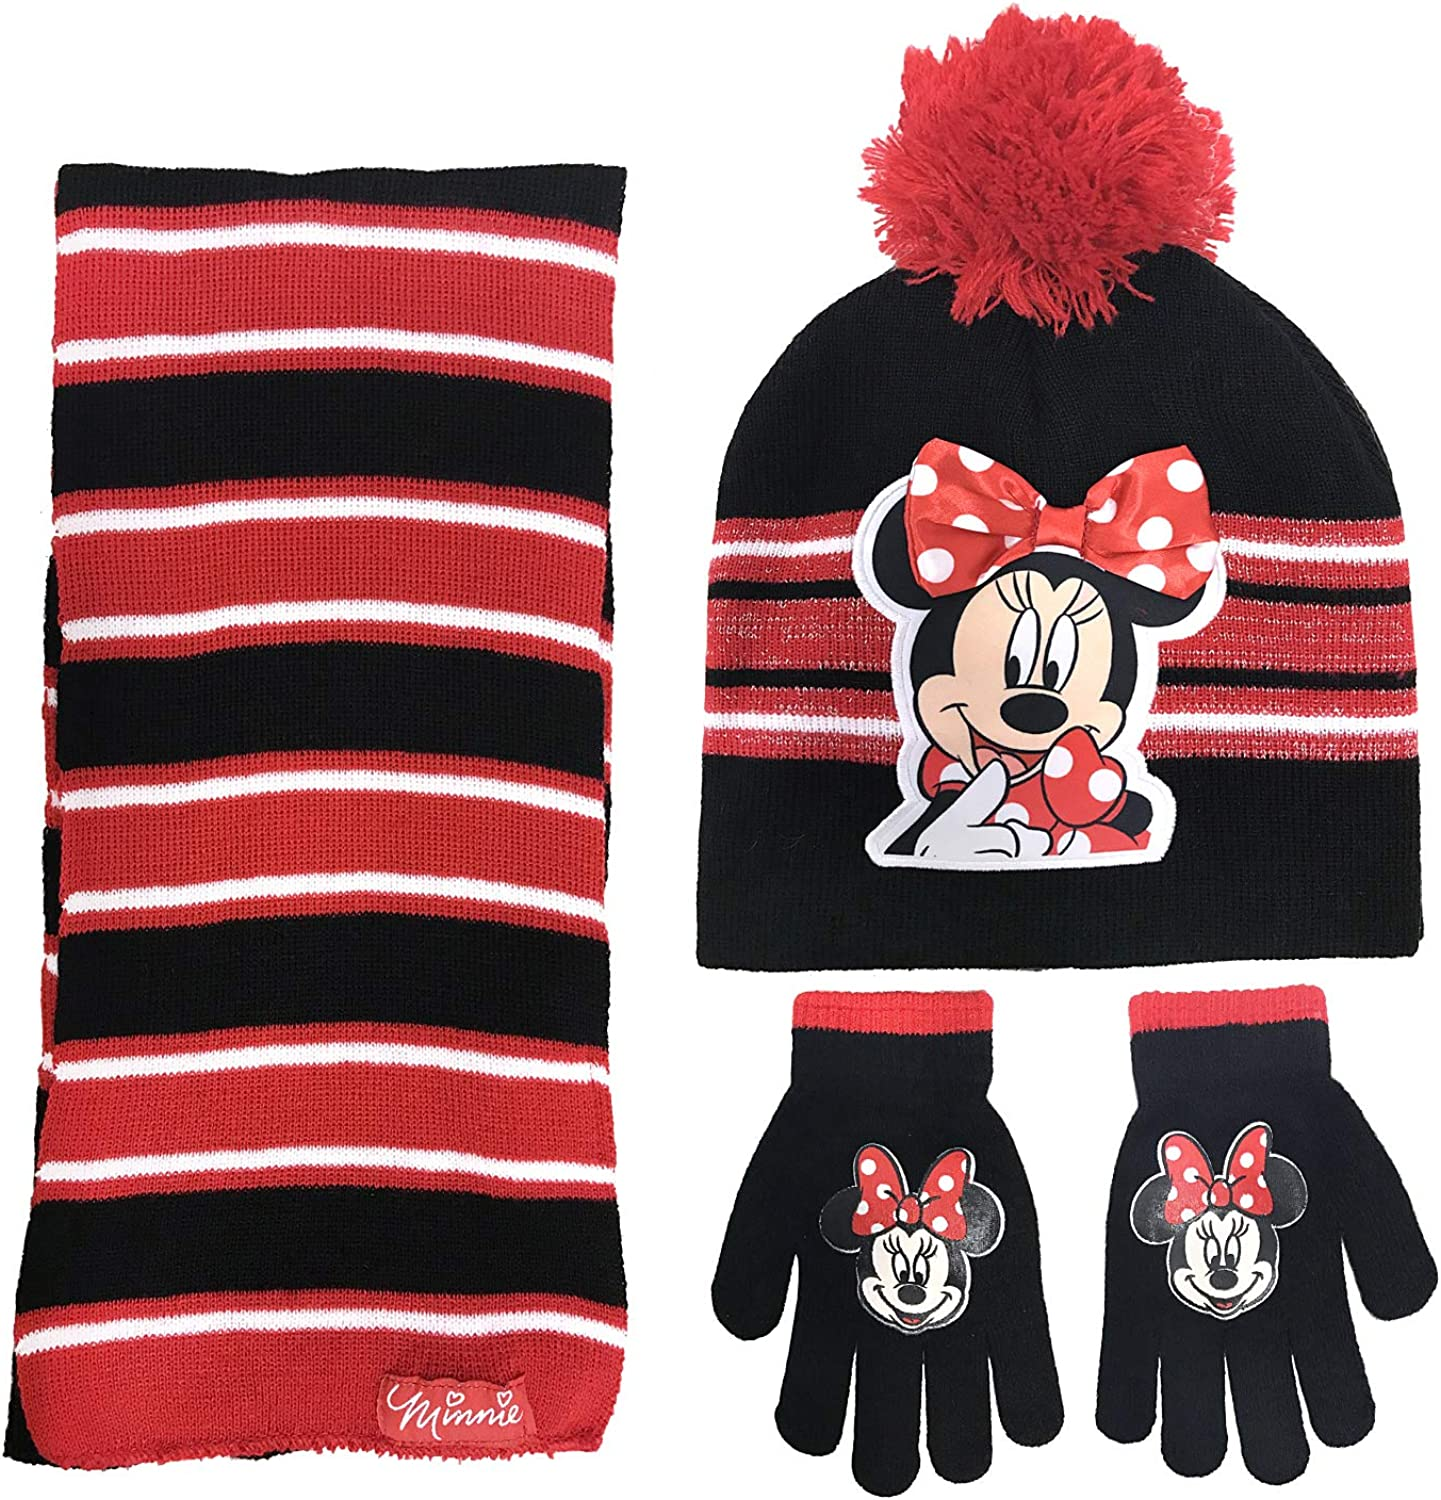 3 PC SET DISNEY HAT SCARF GLOVES FOR KIDS GIRLS /& BOYS CHILDREN WINTER WARM COSY